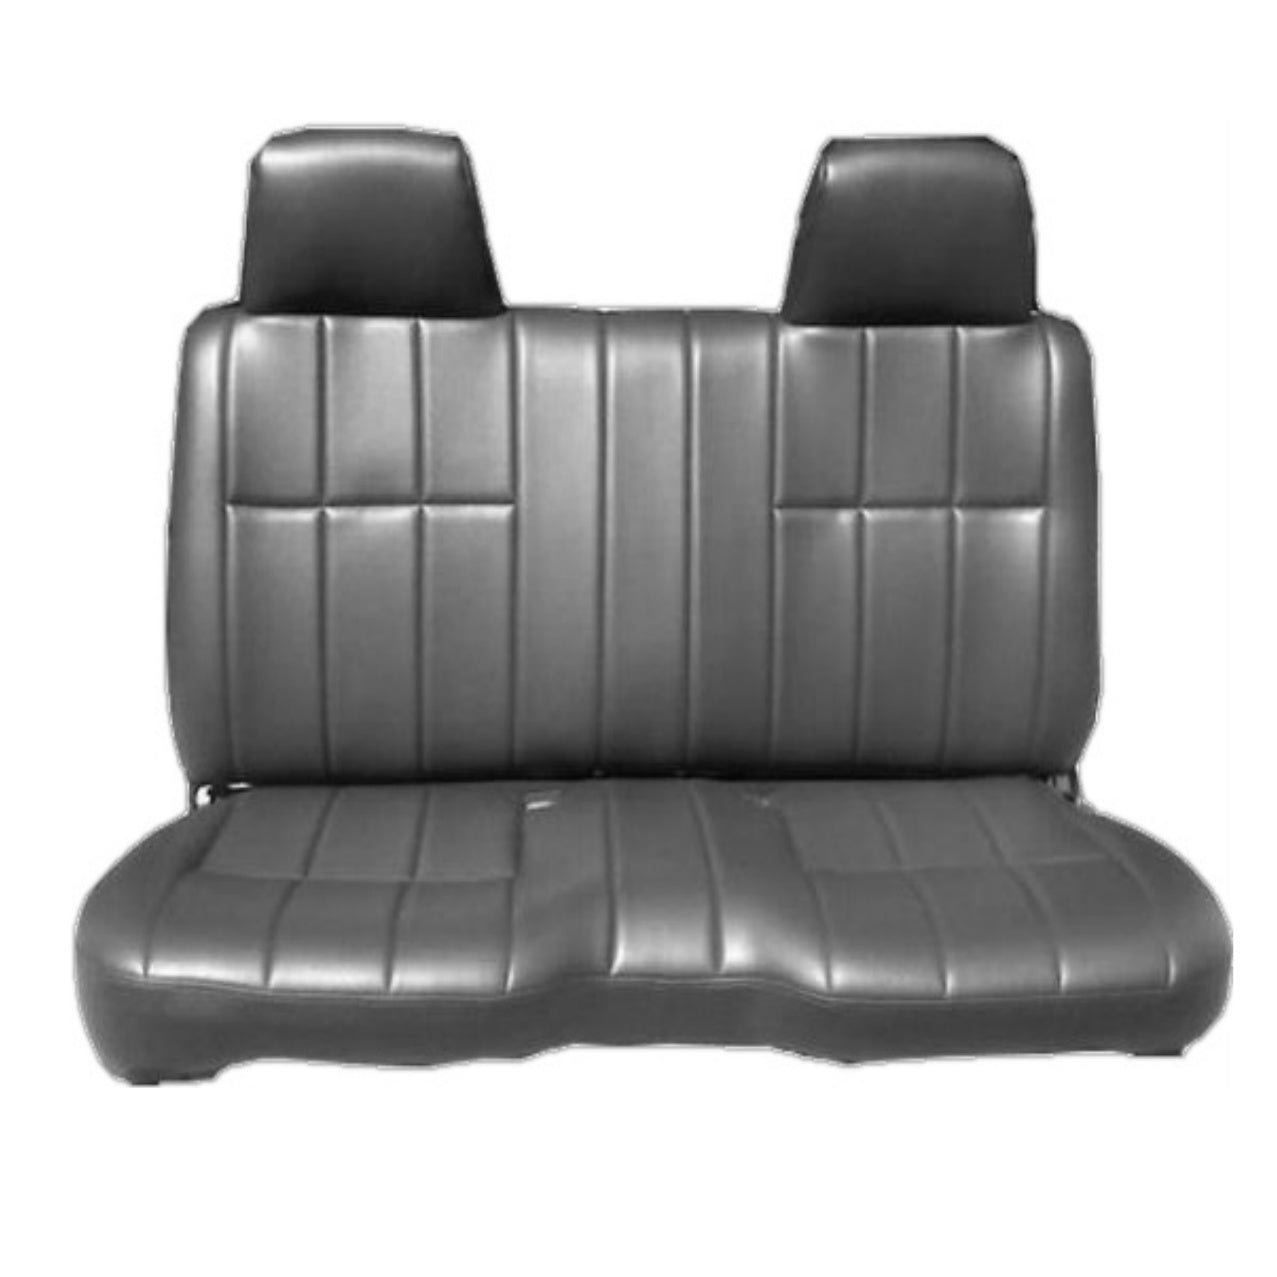 Toyota Tacoma Geniune Pu Leather Front Bench Seat Cover